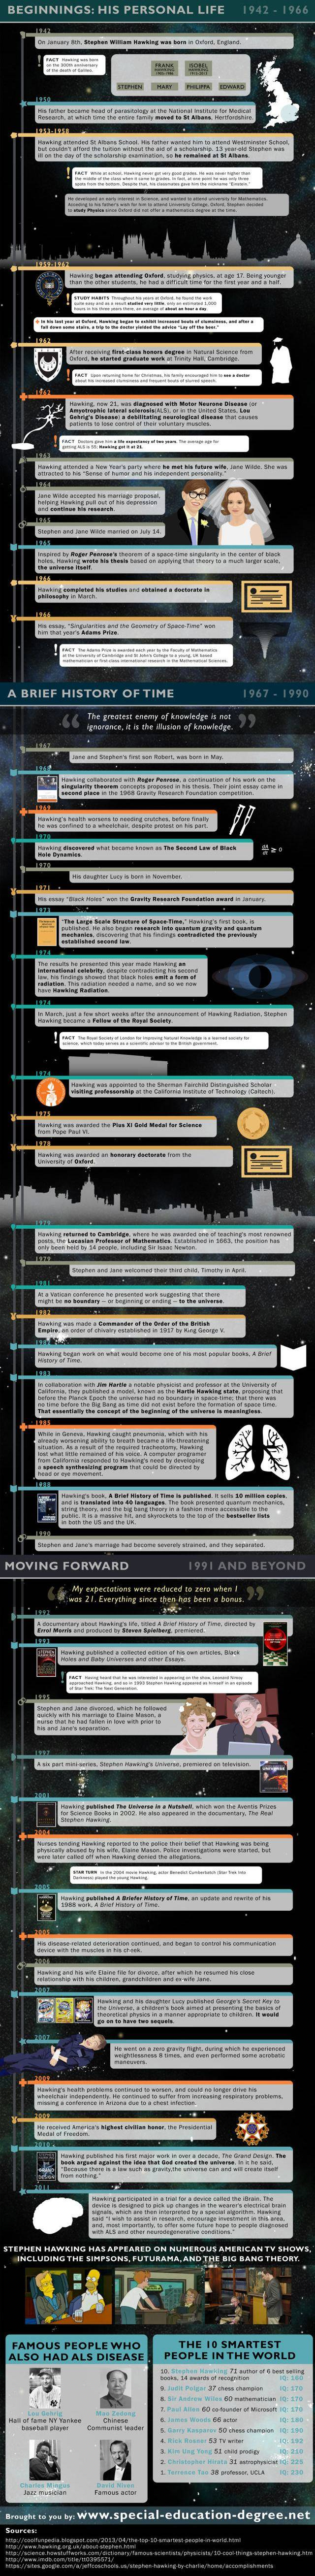 Stephen Hawking- A Brief History of his life and times - infographic